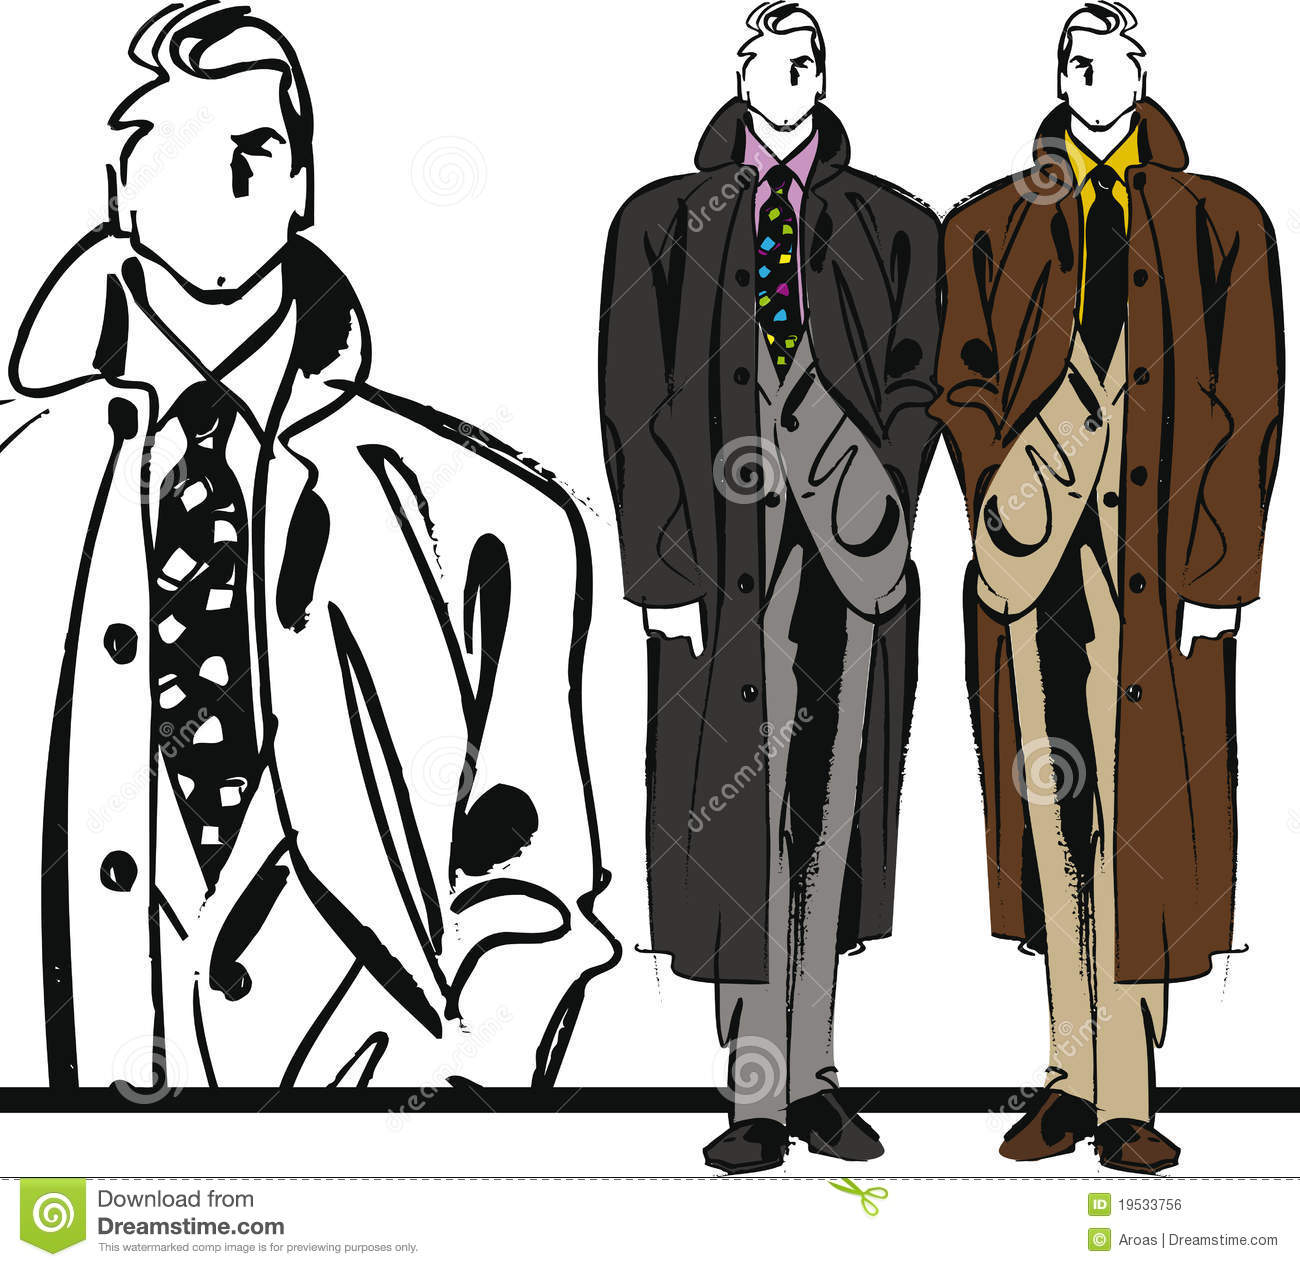 Clothing Design Illustrator handsome man illustration